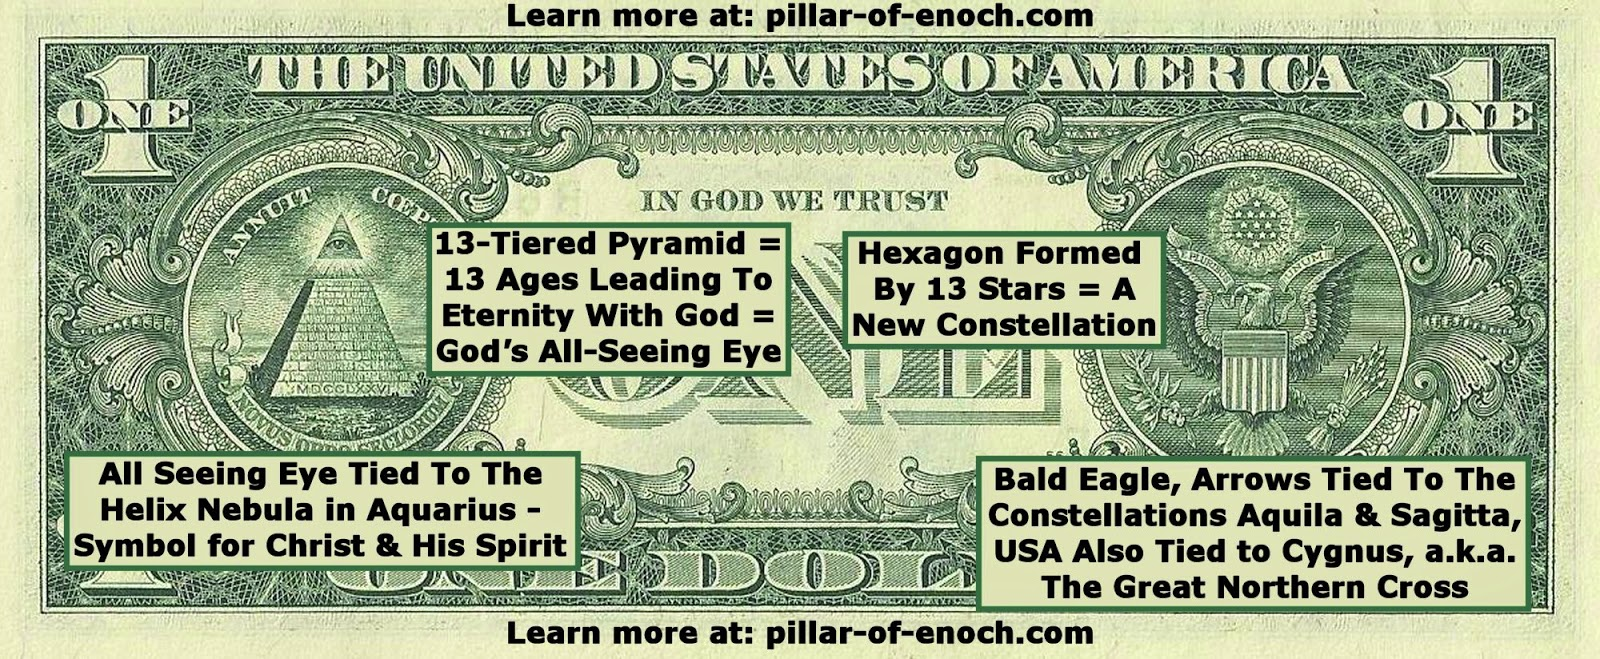 Pillar of enoch ministry blog why us currency is being used as a why us currency is being used as a prophetic tool buycottarizona